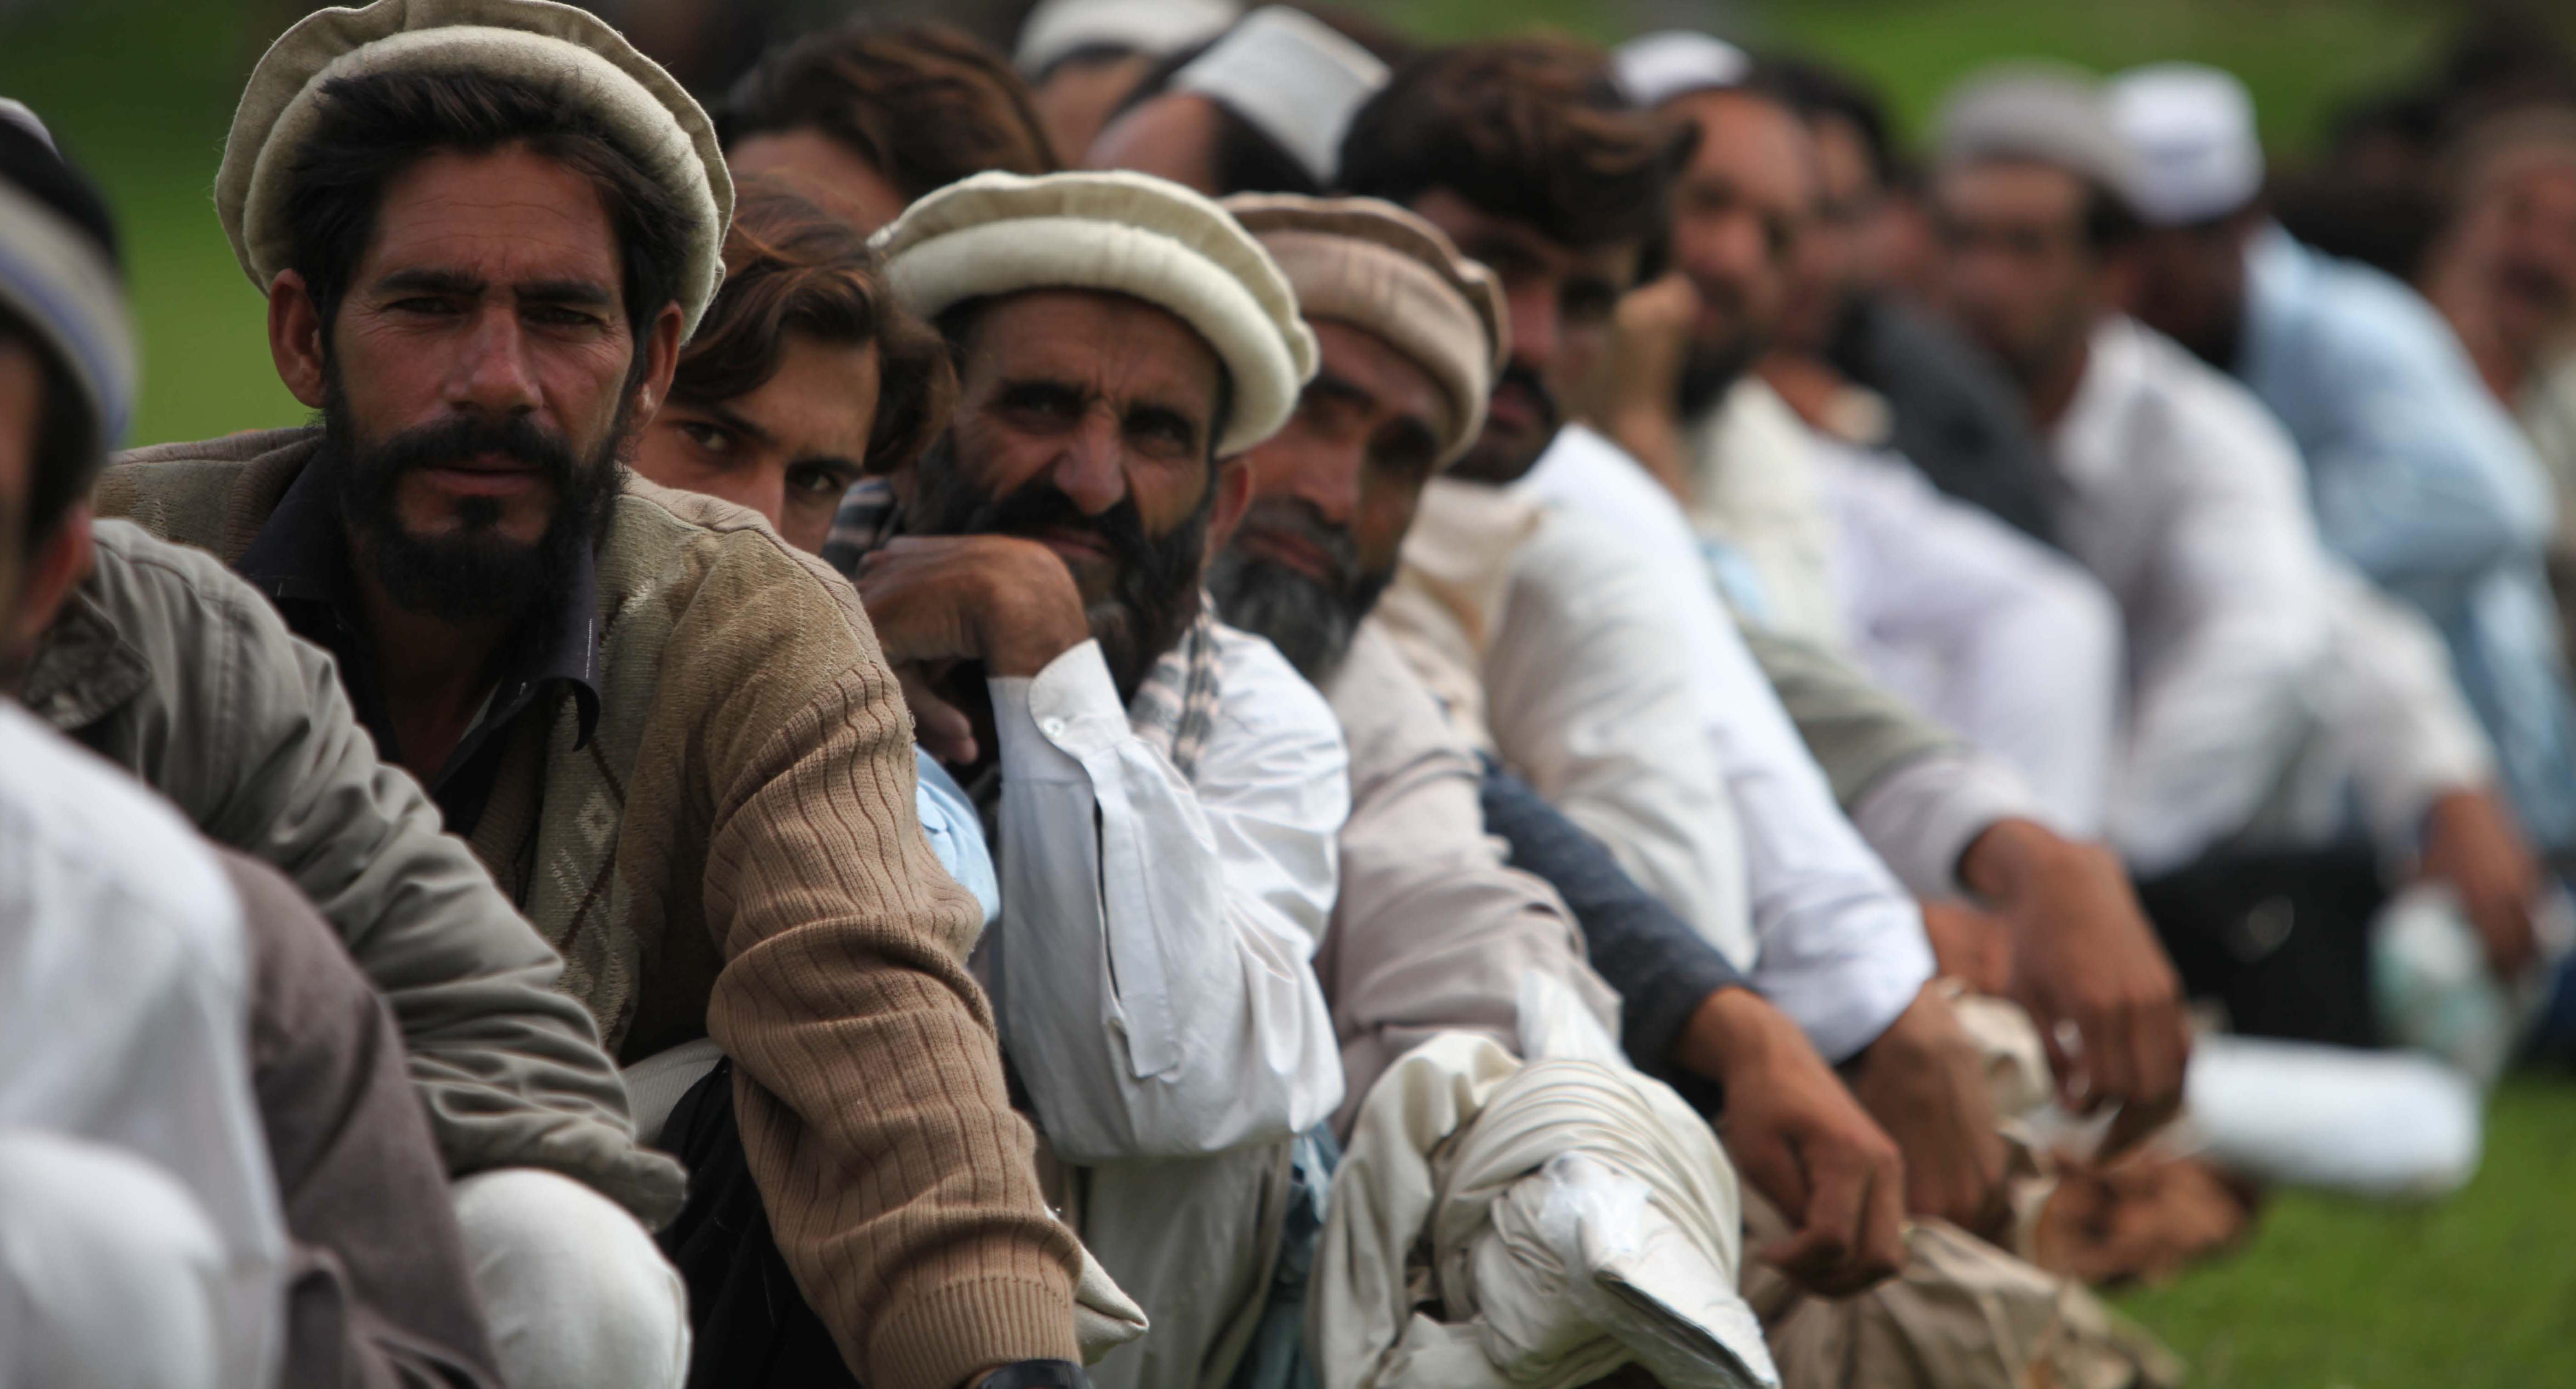 Waiting for disaster assistance in Pakistan's Khyber province, 2010 (Photo: Dvidshub/Flickr)